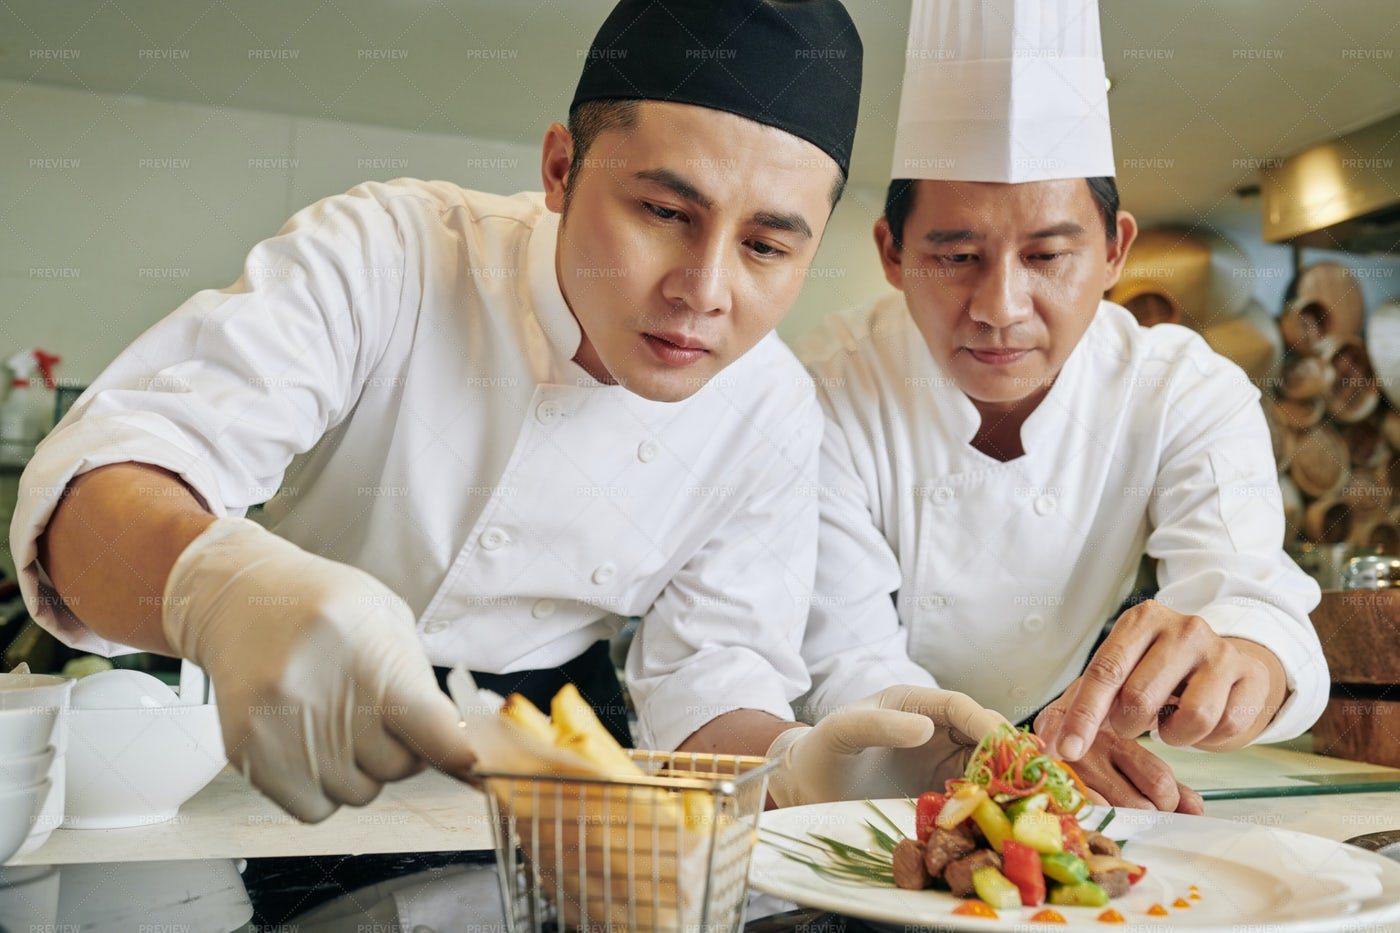 Two Chefs Decorating The Salad: Stock Photos